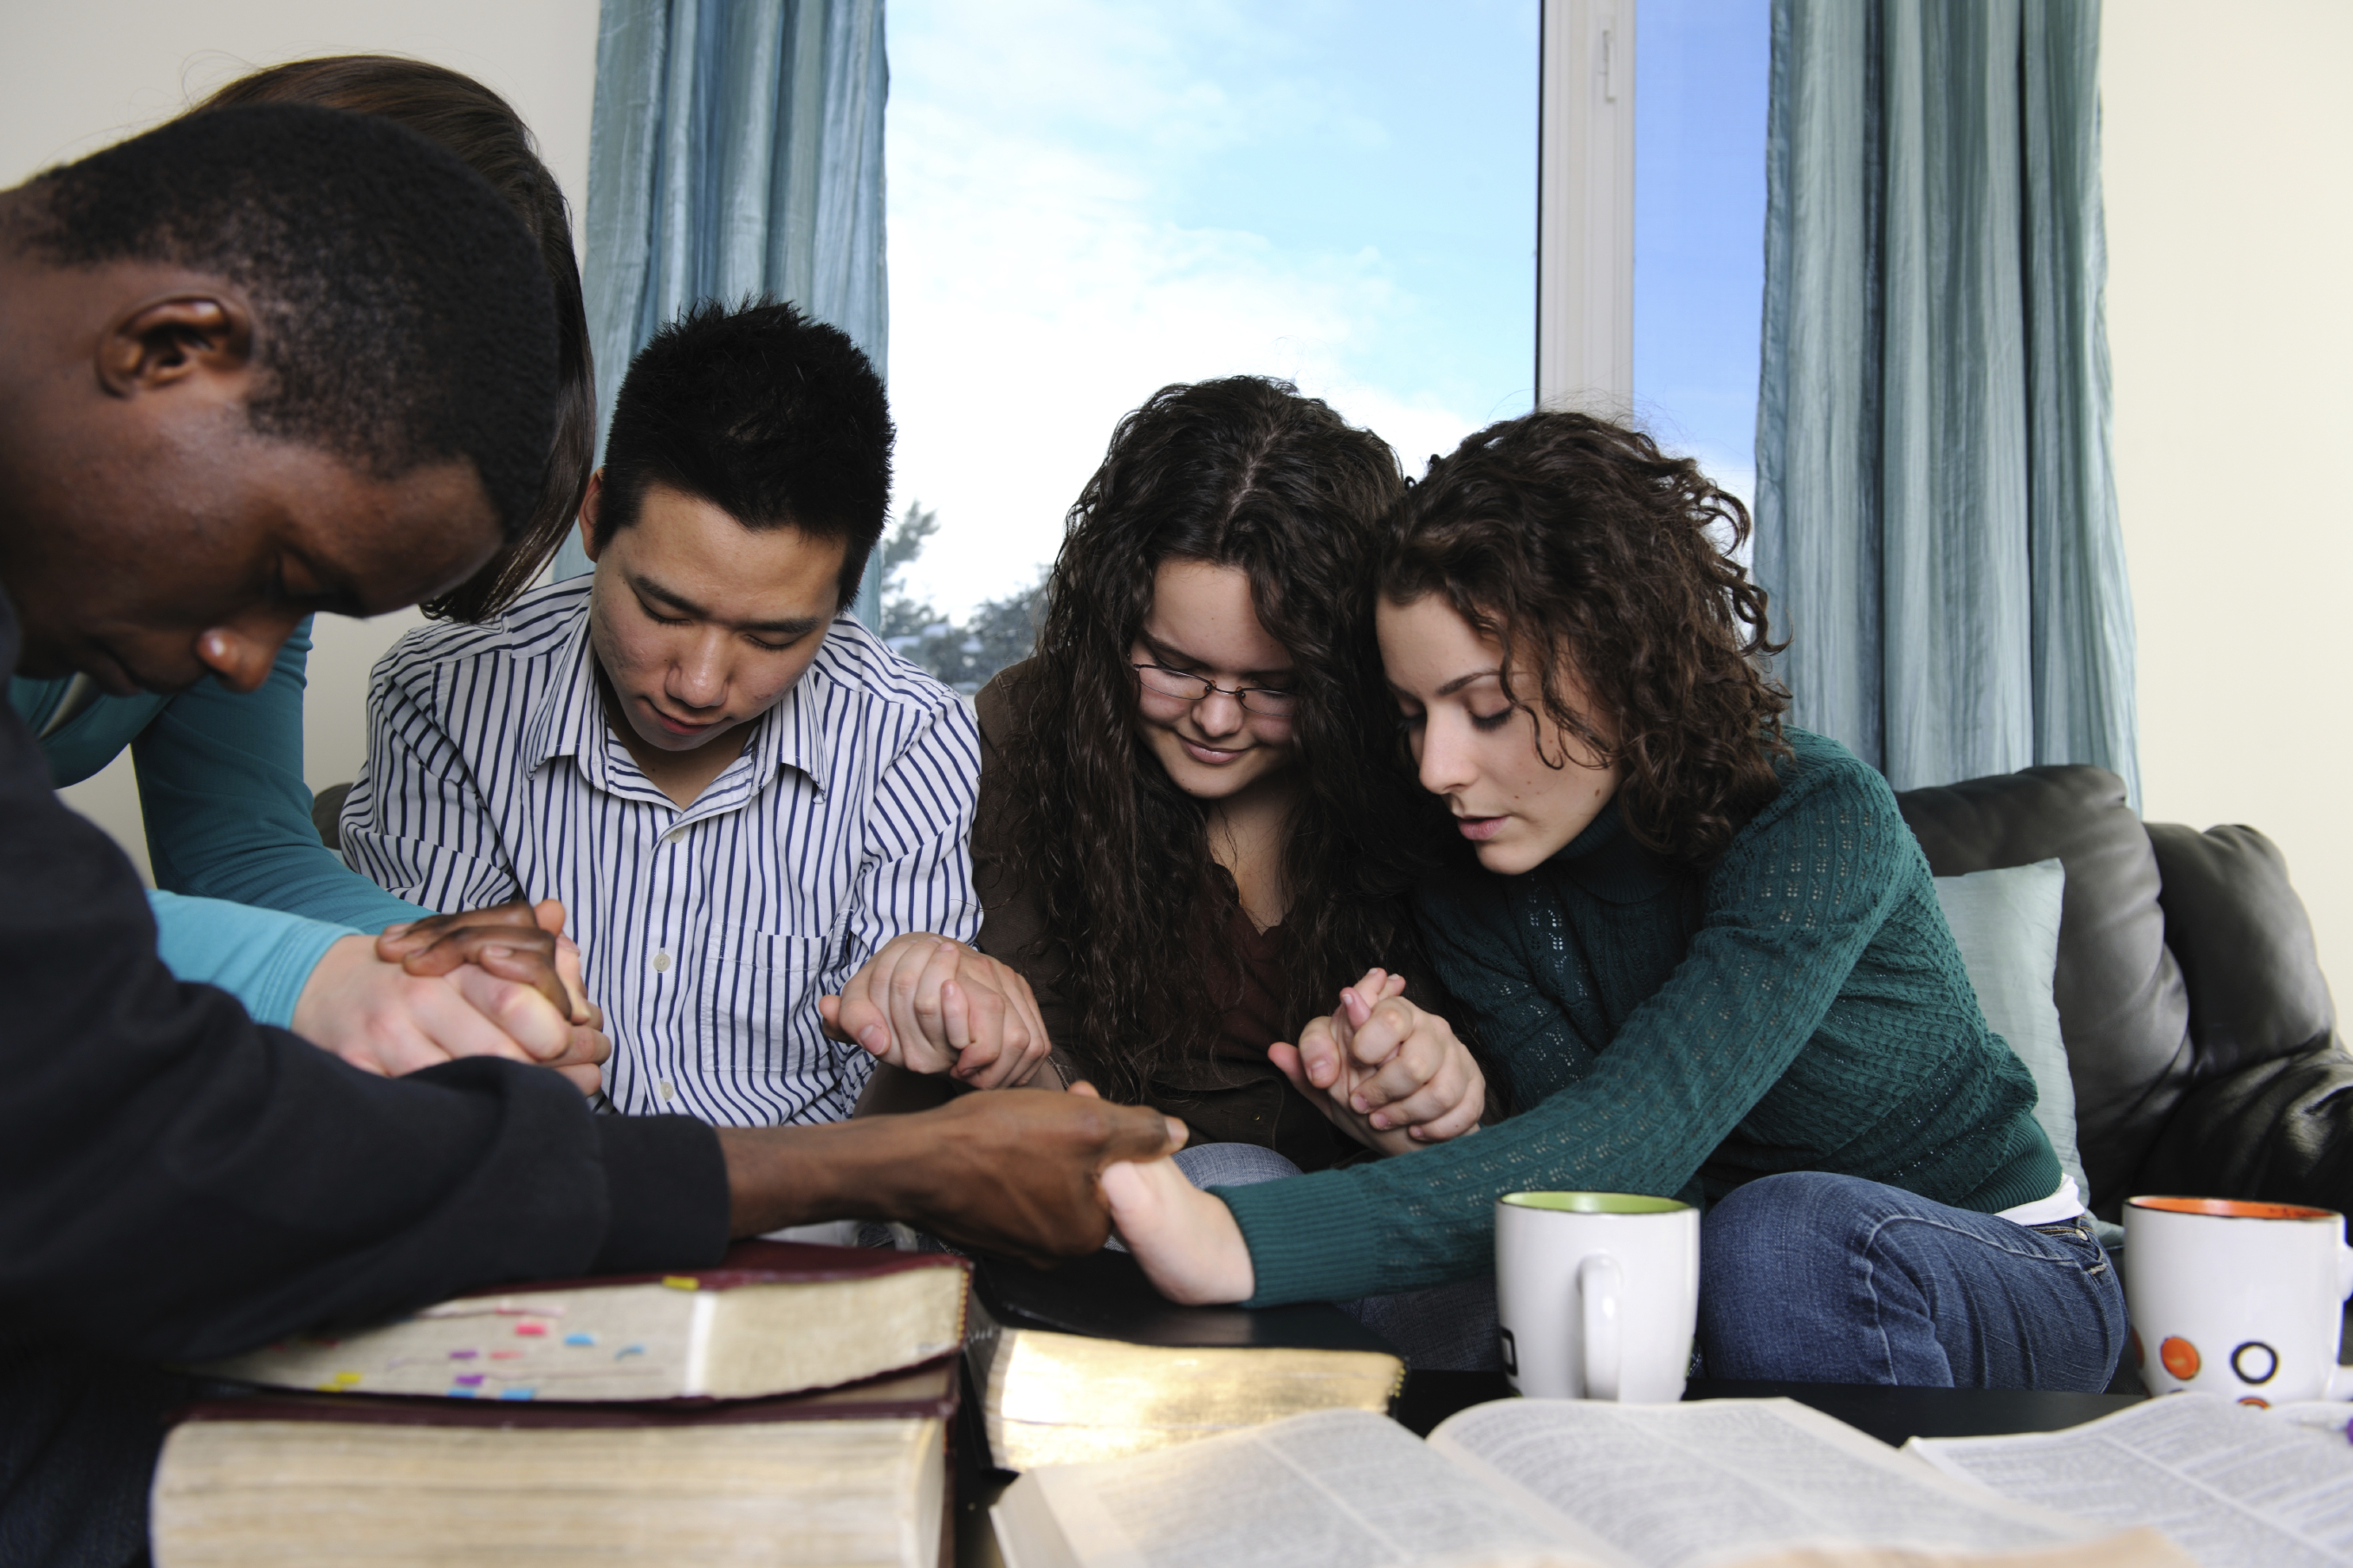 Five diverse college students praying together while holding hands.